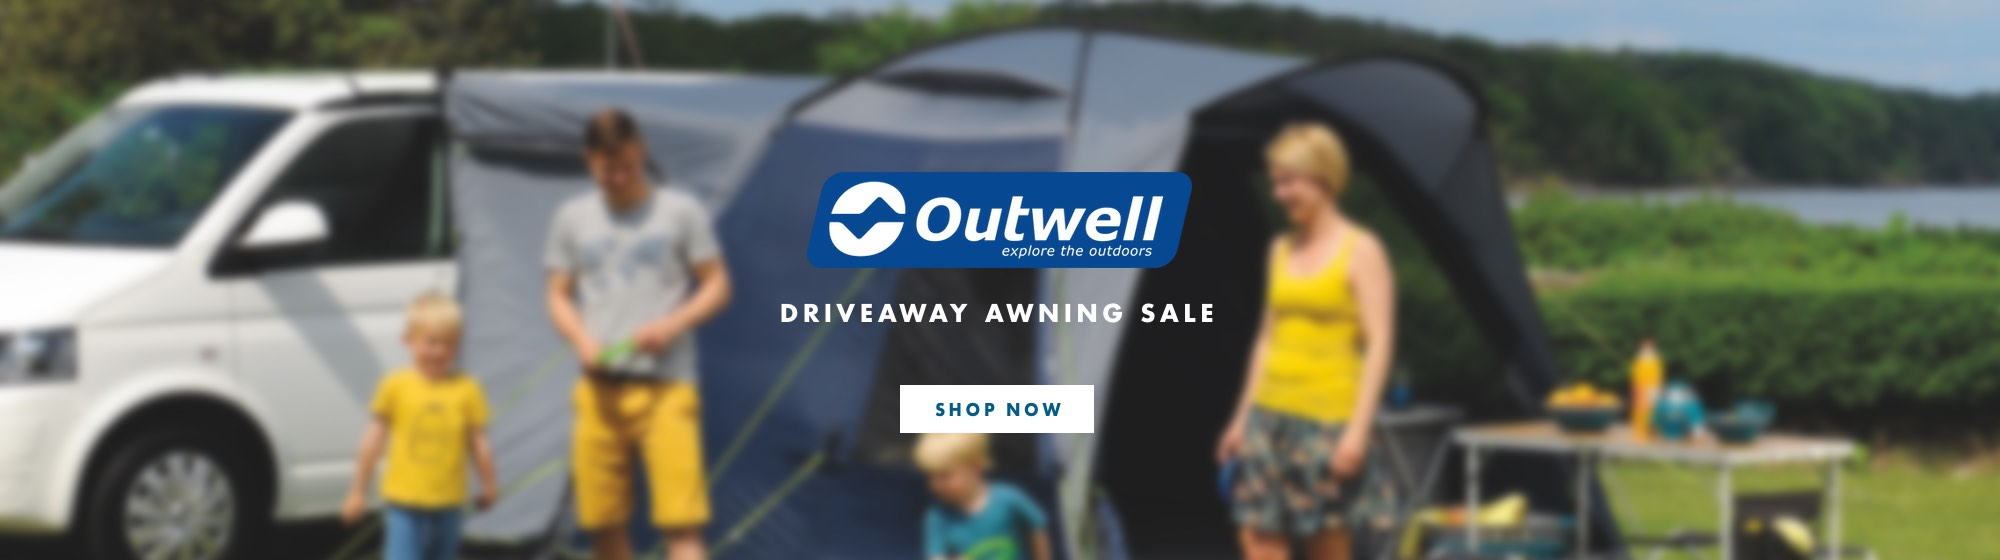 Outwell Driveaway Awning Sale